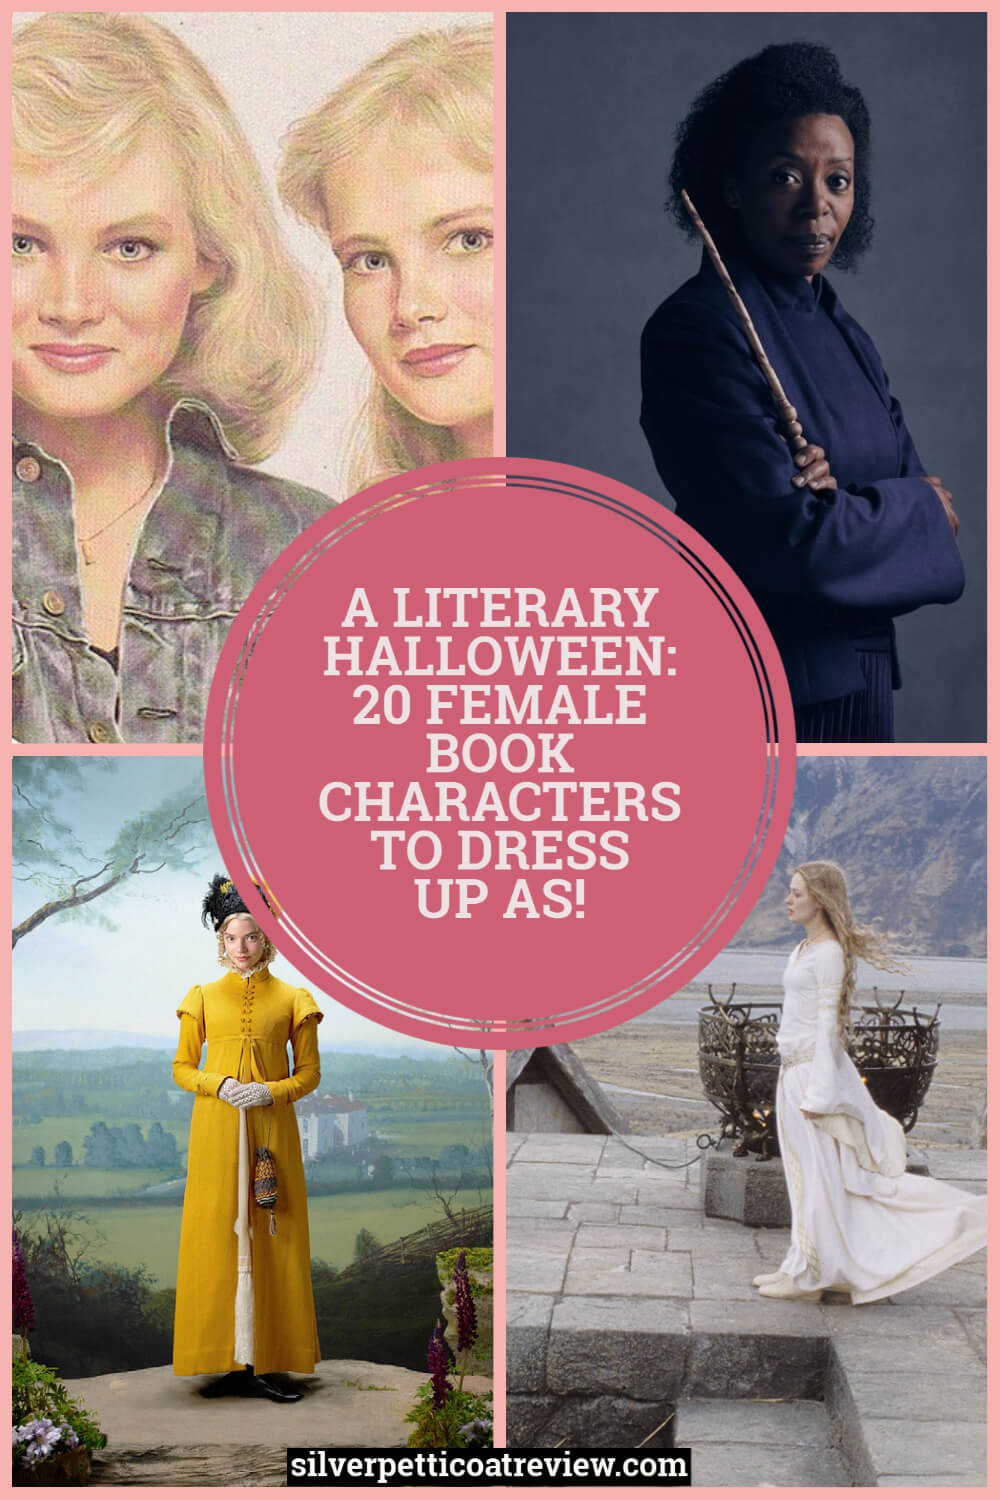 A Literary Halloween: 20 Female Book Characters to Dress Up As! Pinterest Image